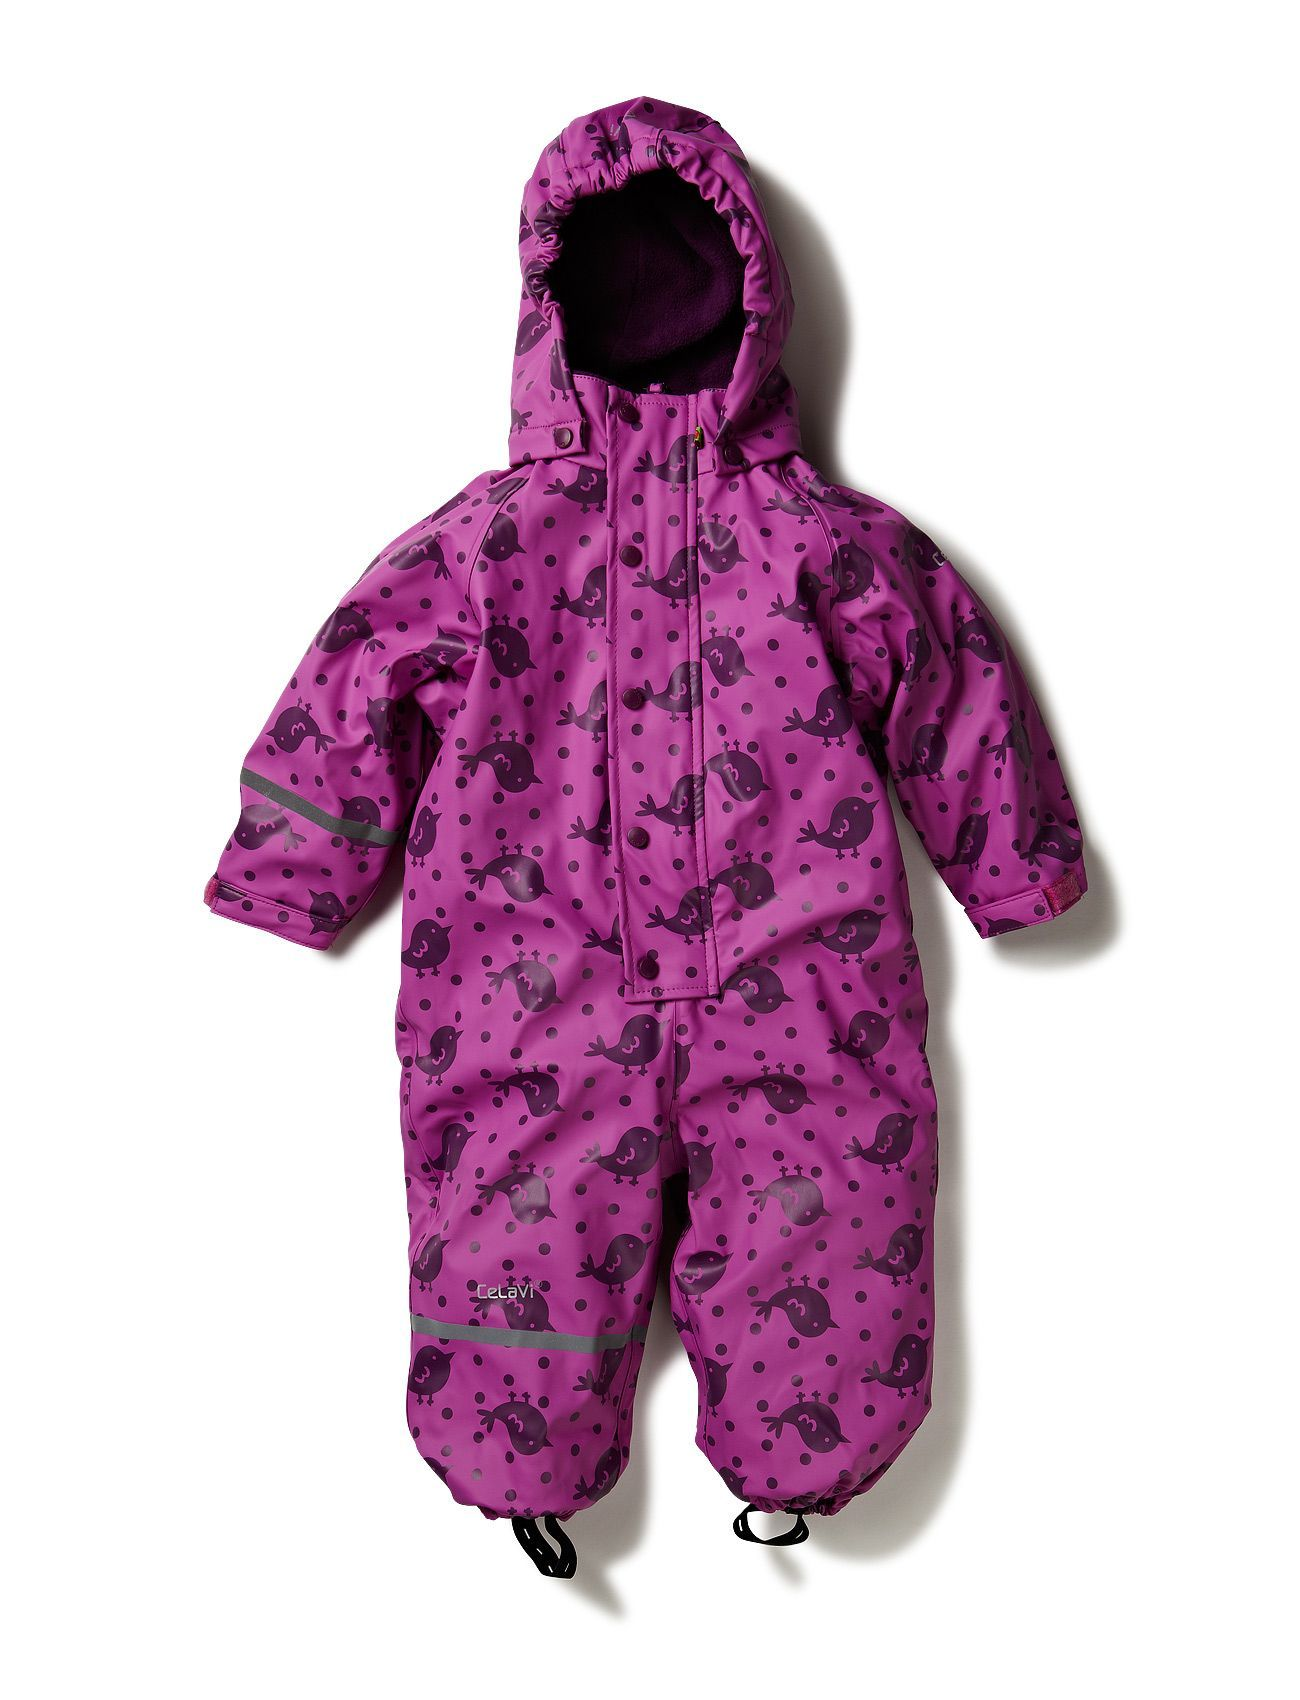 CeLaVi 1 pc rainwear suit w.fleece lining